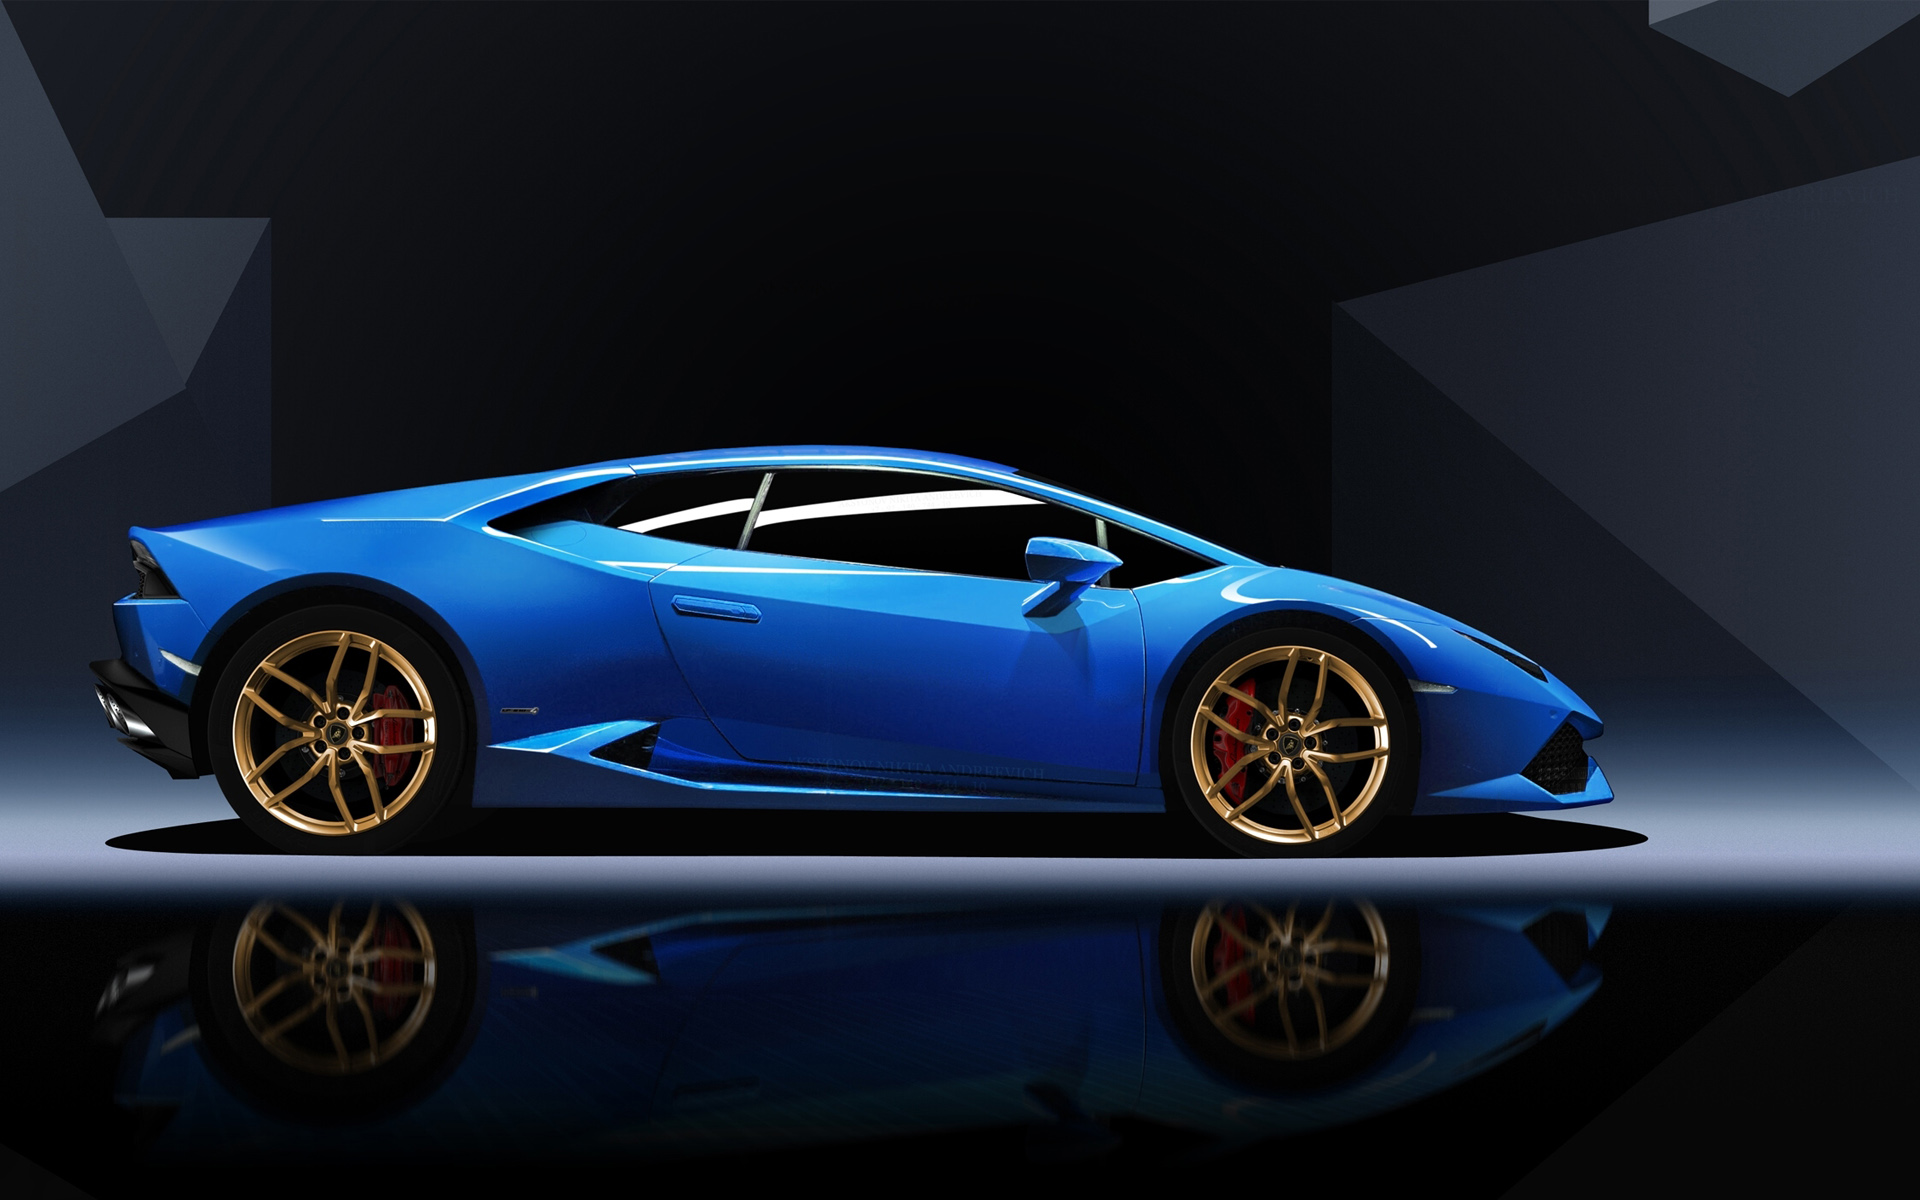 Blue Lamborghini Huracan Wallpaper | HD Car Wallpapers ...